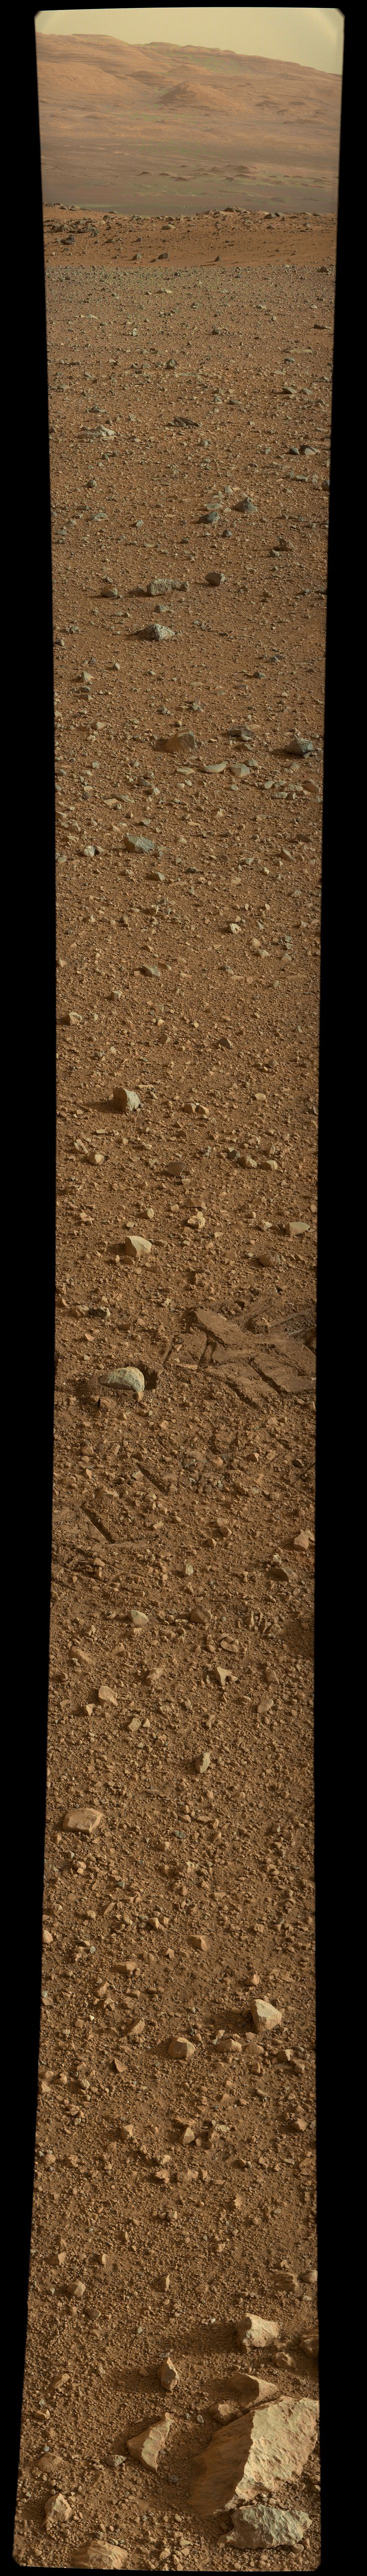 Last panoramic from Curiosity Rover, on Mars. http://www.db-prods.net/marsroversimages/curiosity.html#sol17